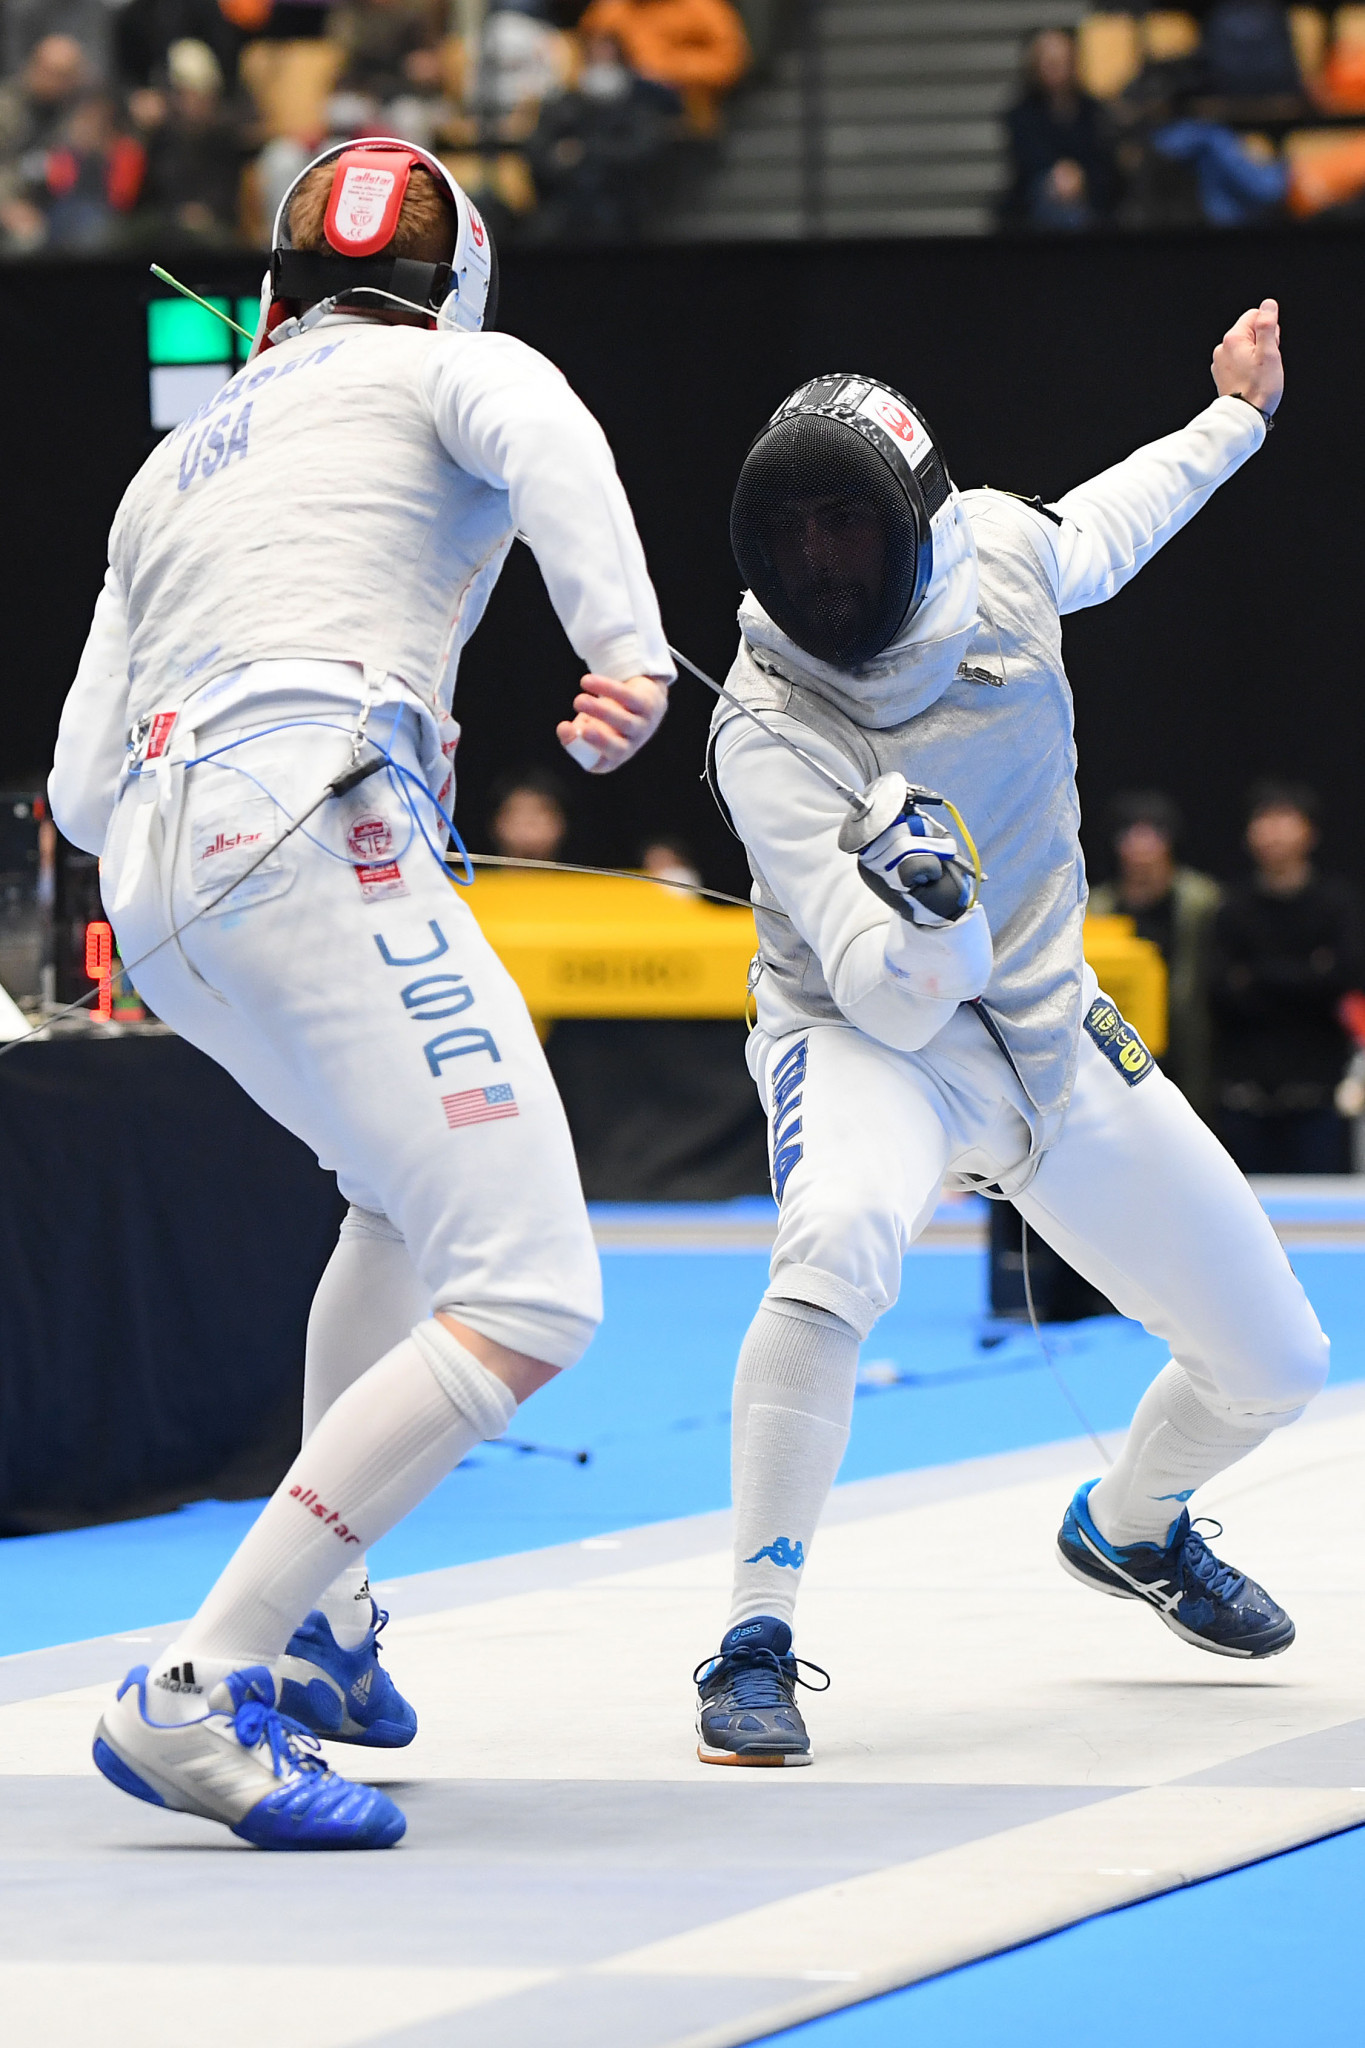 Italy's world champion Alessio Foconi will face qualifier Philip Shin of the United States as he gets into action at the FIE Men's Foil World Cup in Saint Petersburg tomorrow morning ©Getty Images